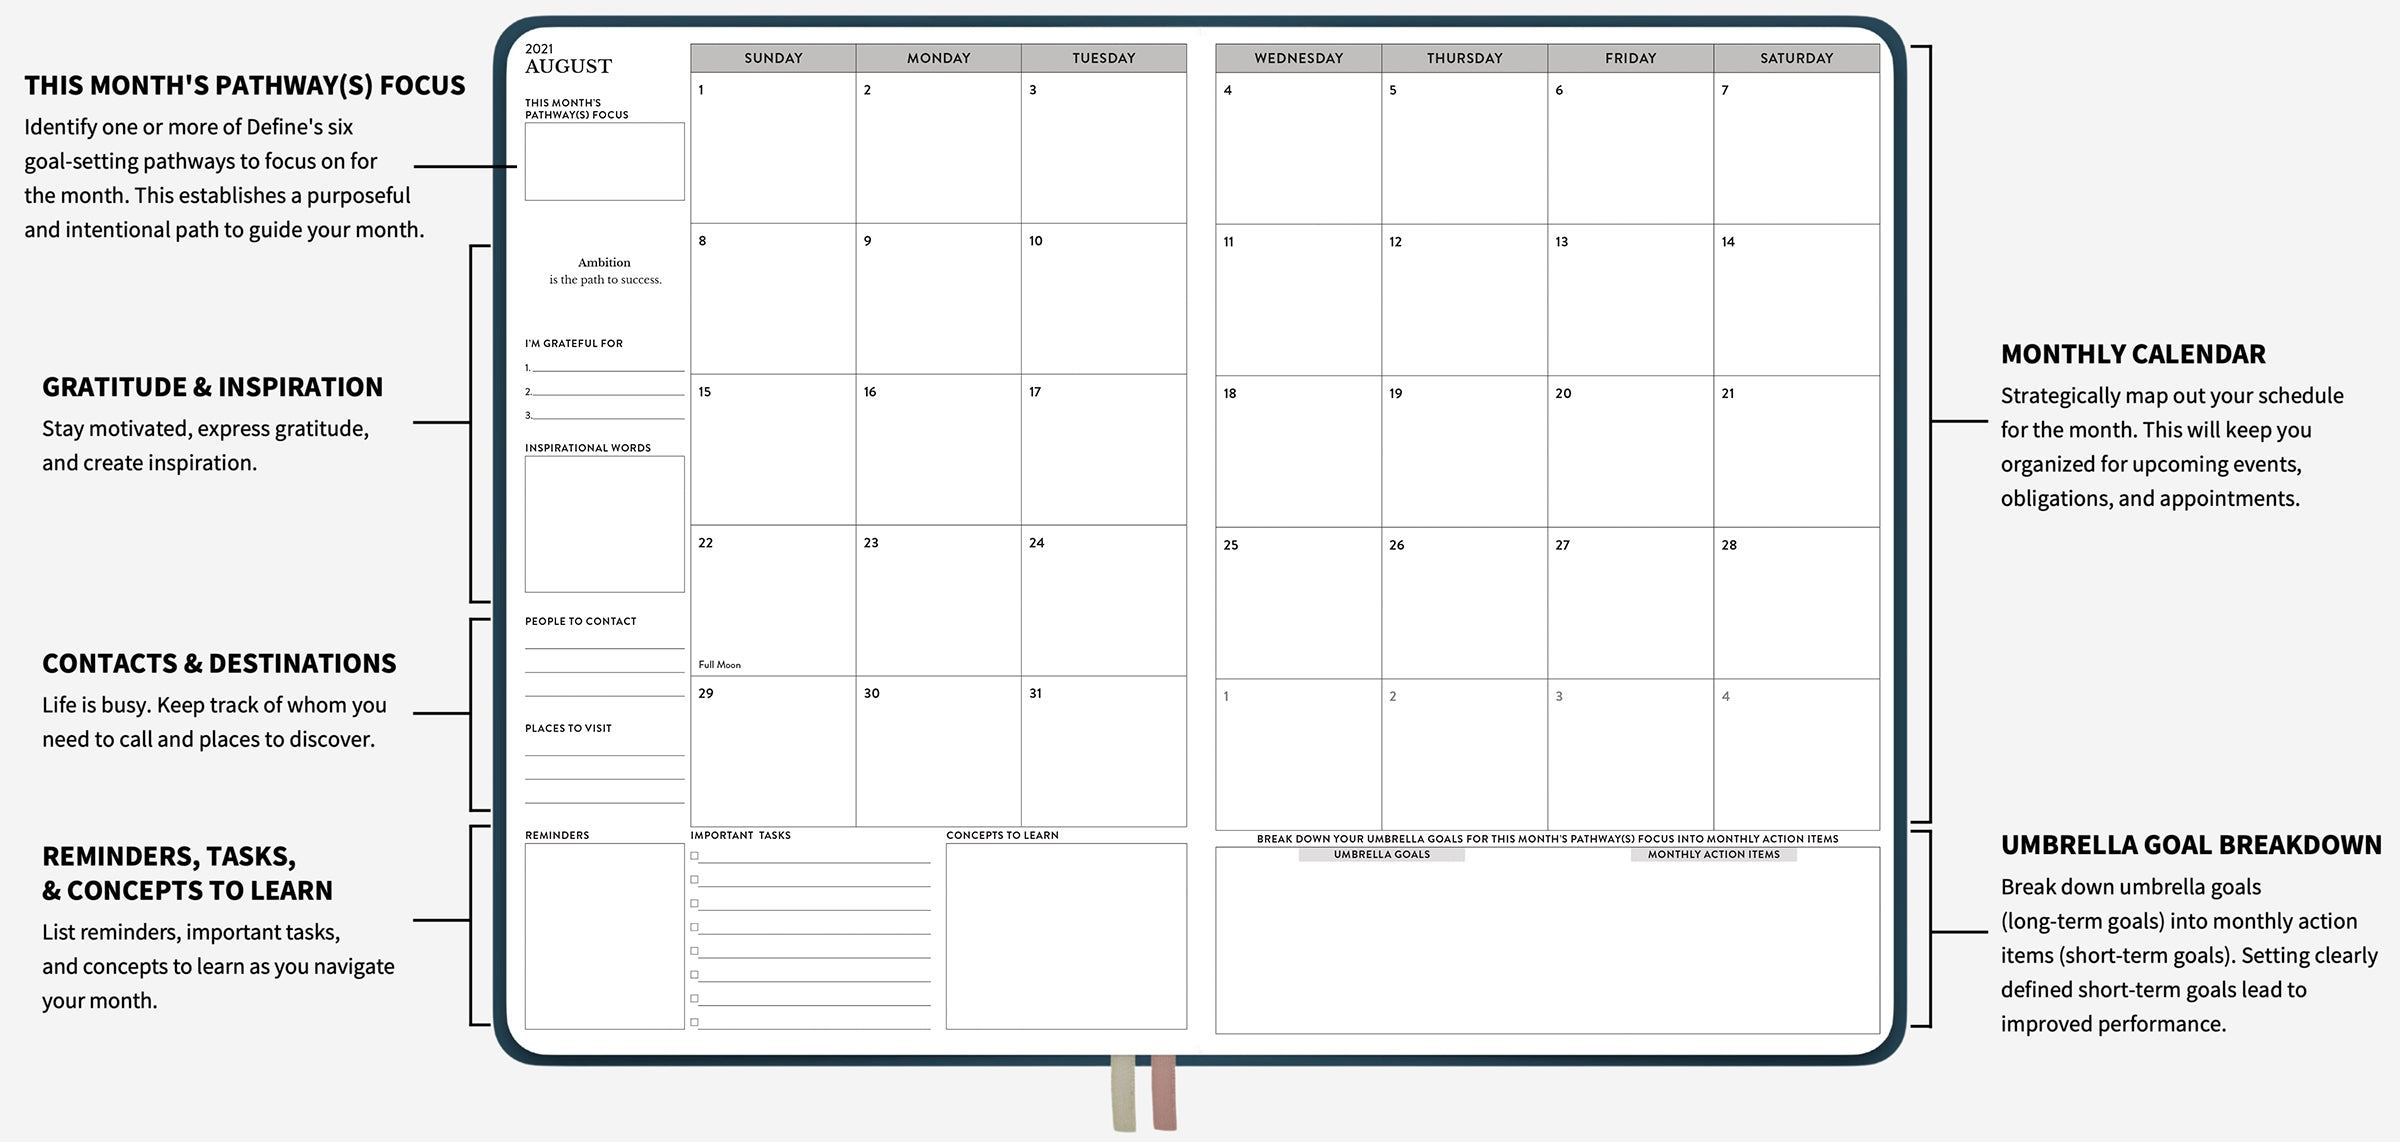 Example of the monthly layout